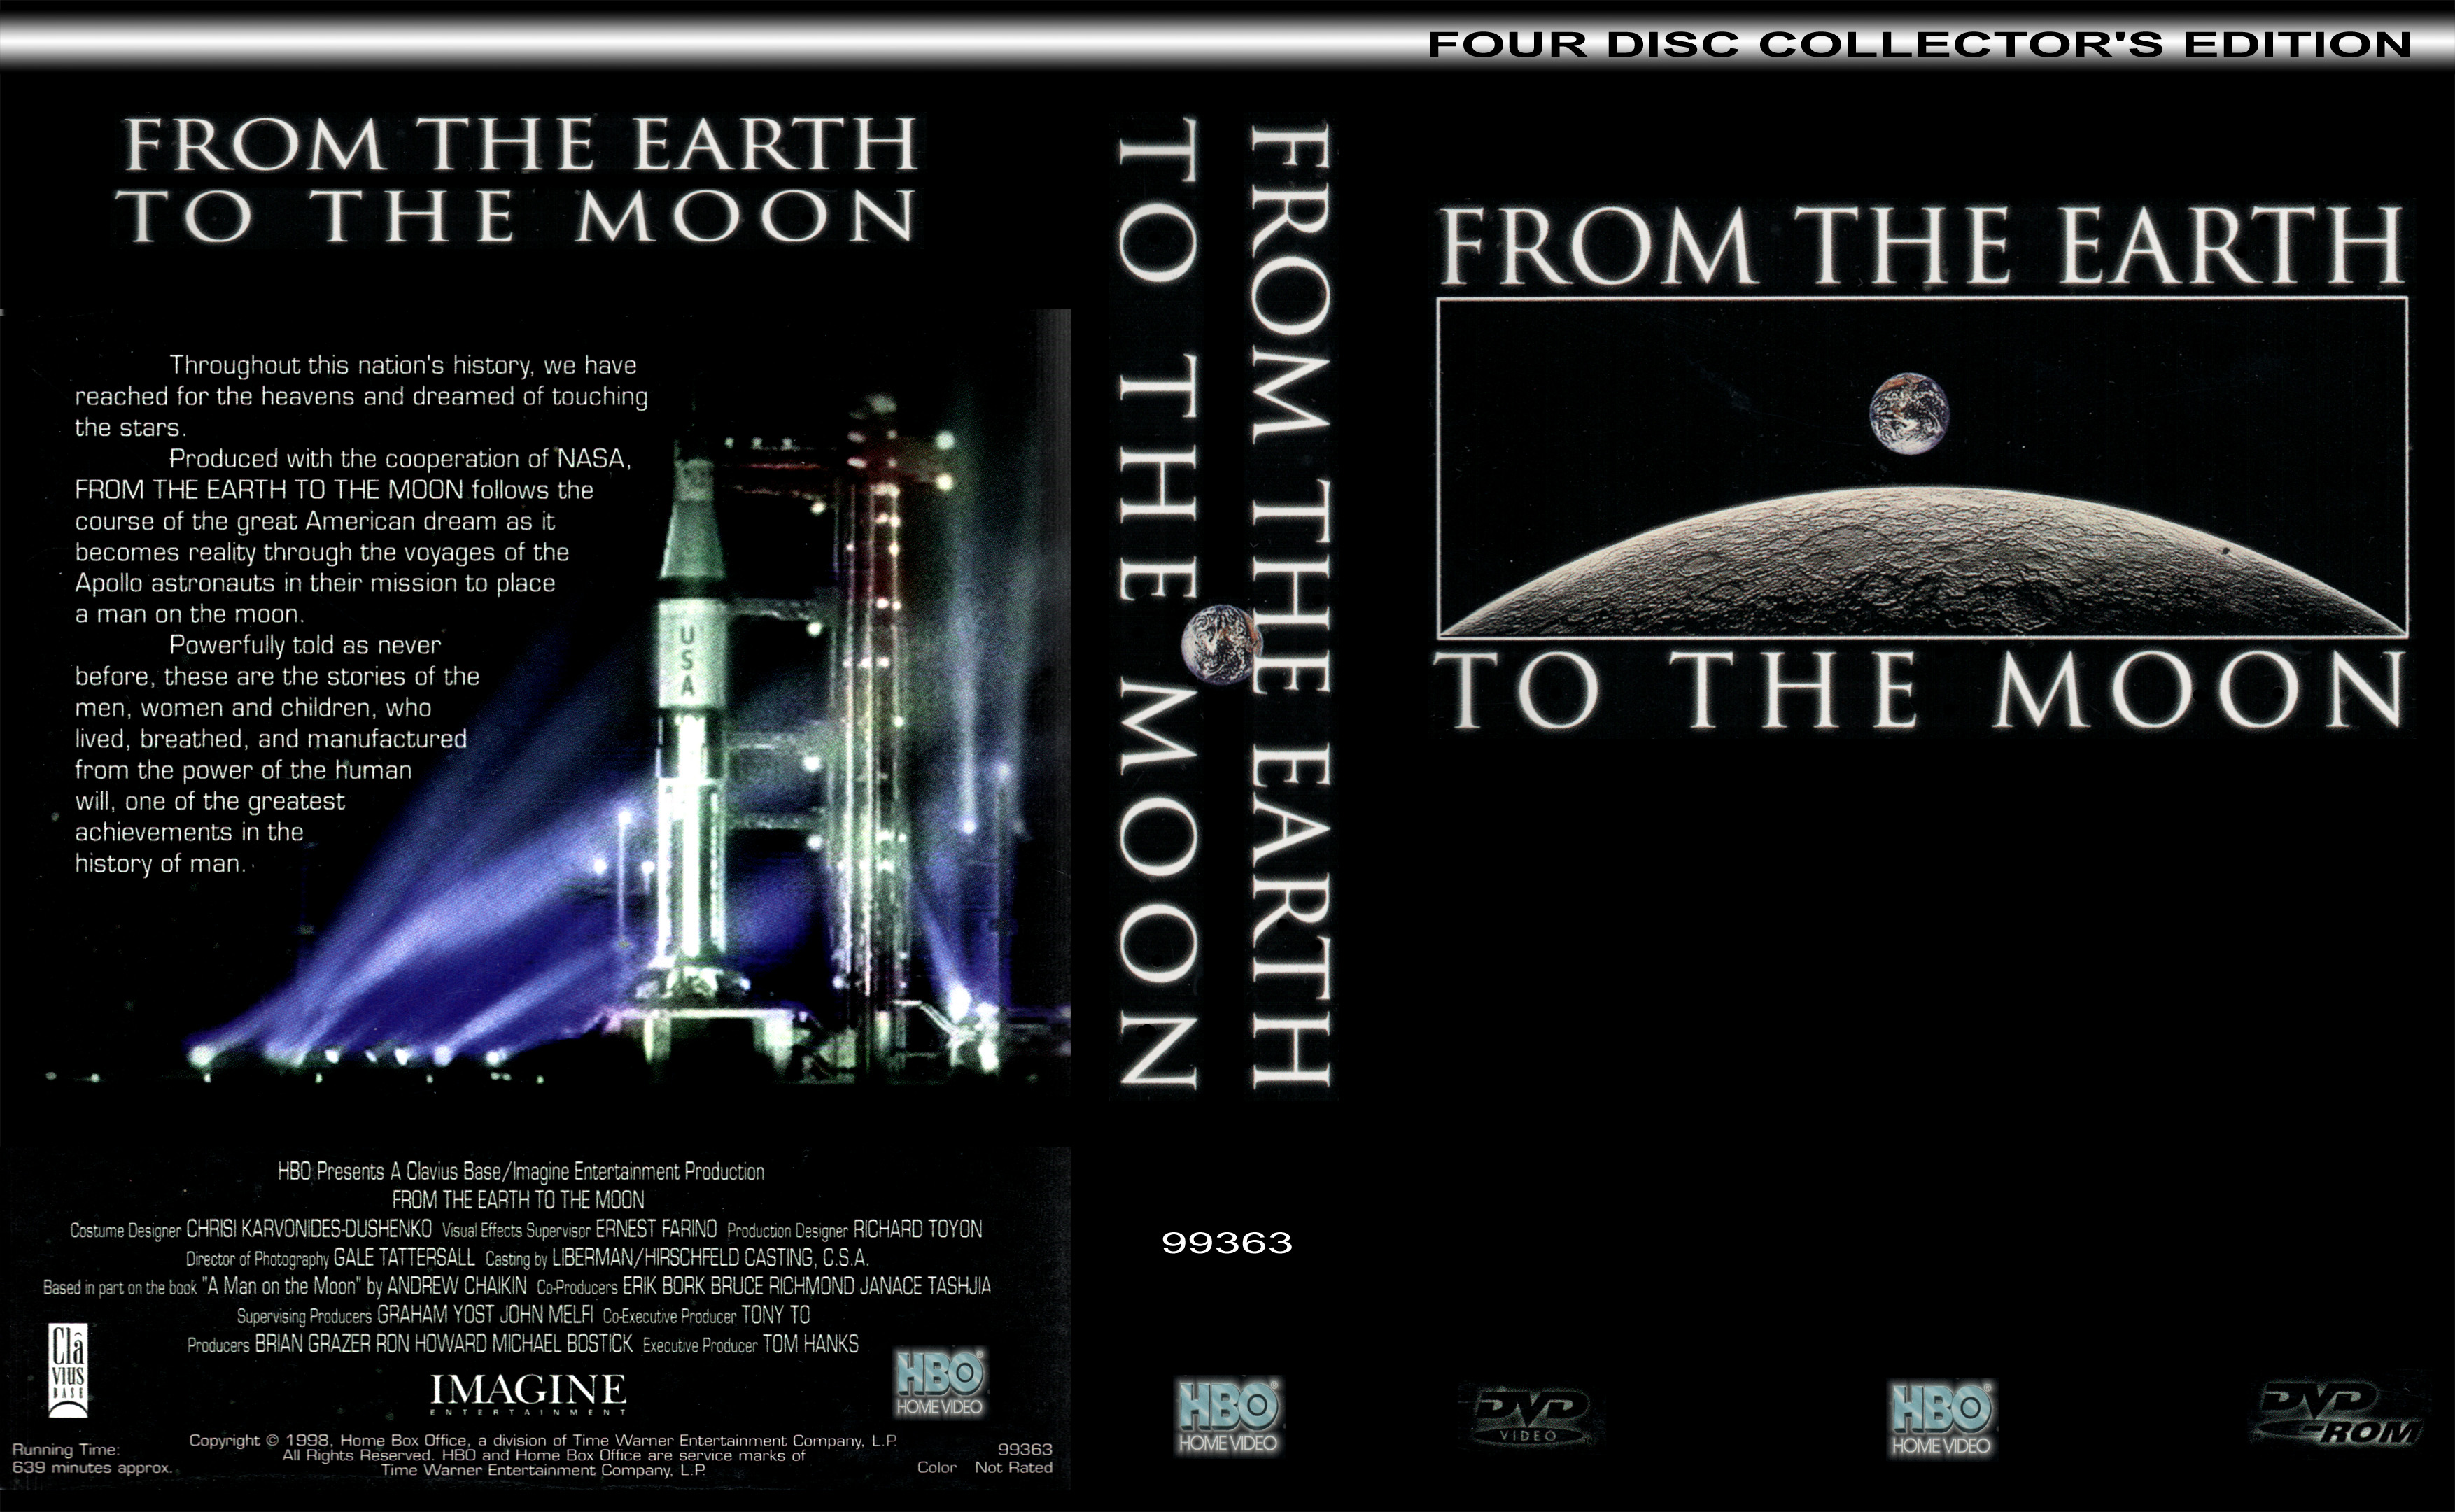 a review of from the earth to the moon by jules verne Jules verne was one of the authors in the inspirational reading section of castle falkensteinheck, the game also made him into france's scientific advisor, having him responsible for their massive verne cannons which formed a sort of nuclear deterrent.